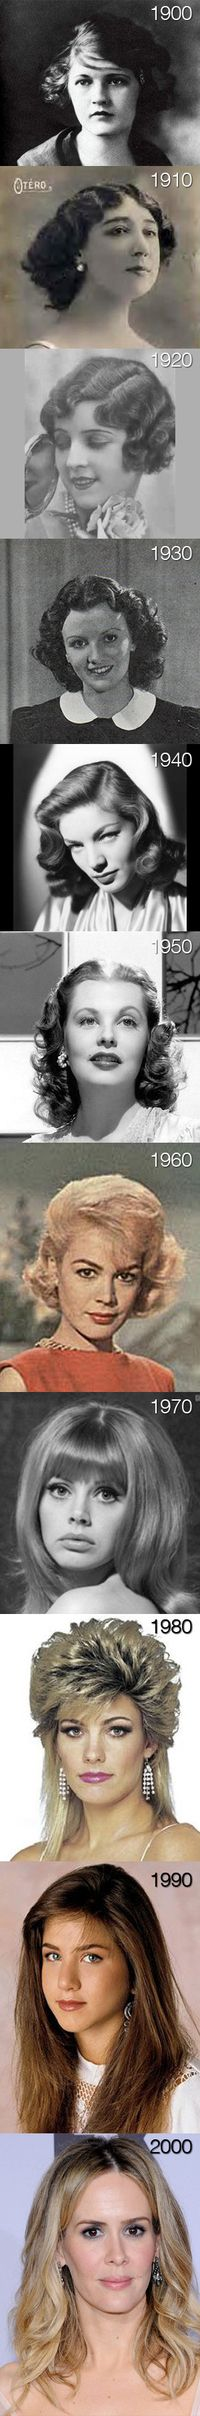 The evolution of hair after the 60's it just got worse... and worse... and worse...